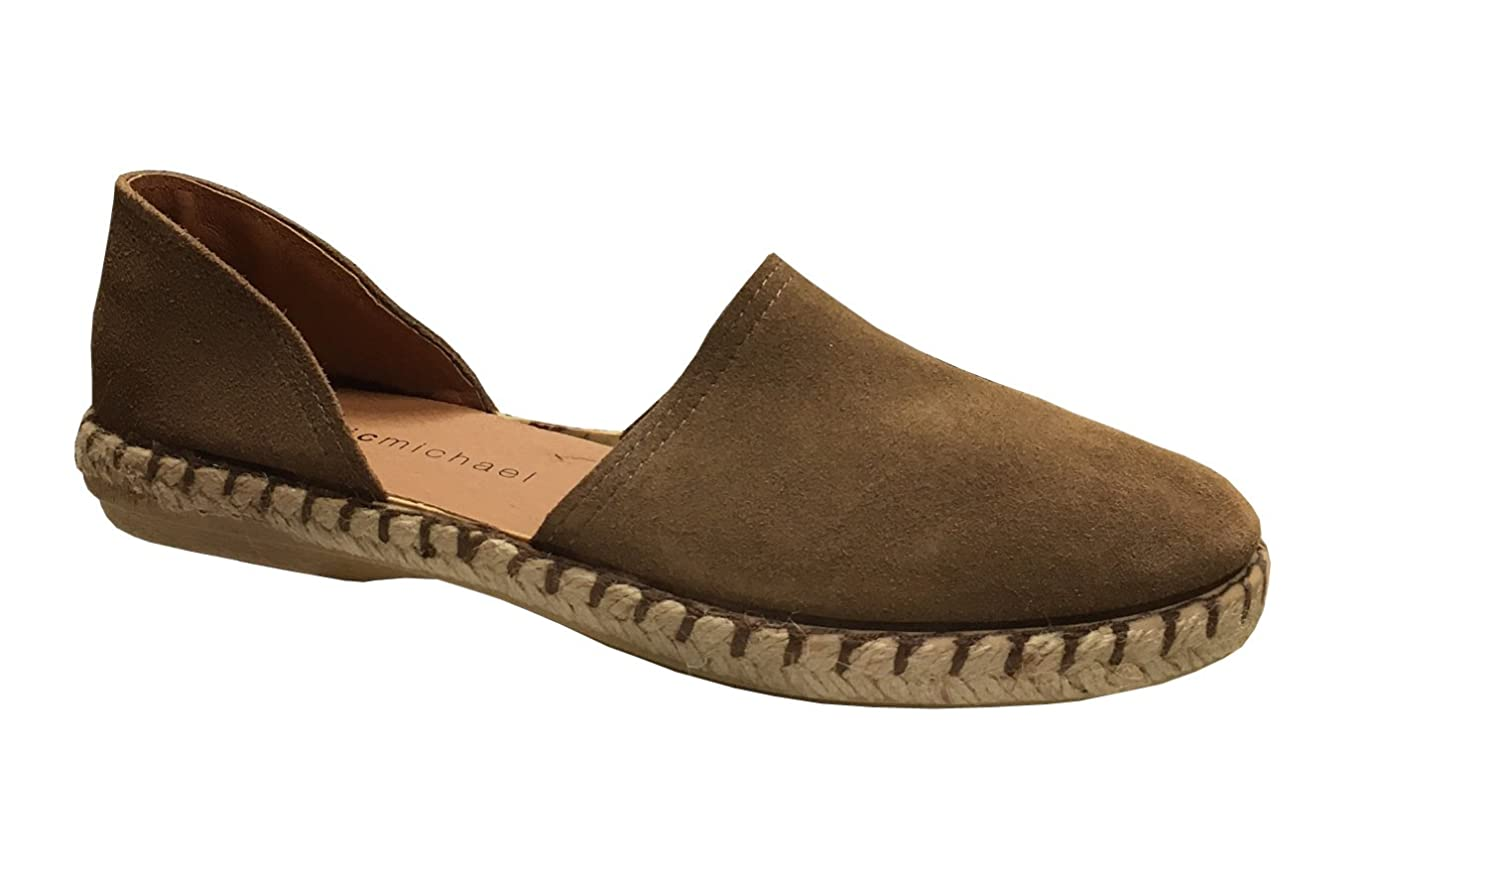 Eric Michael Women's Olivia Slip On B014IOHTNE 36 M US|Tan EU / 5.5-6 B(M) US|Tan M 4c1f66